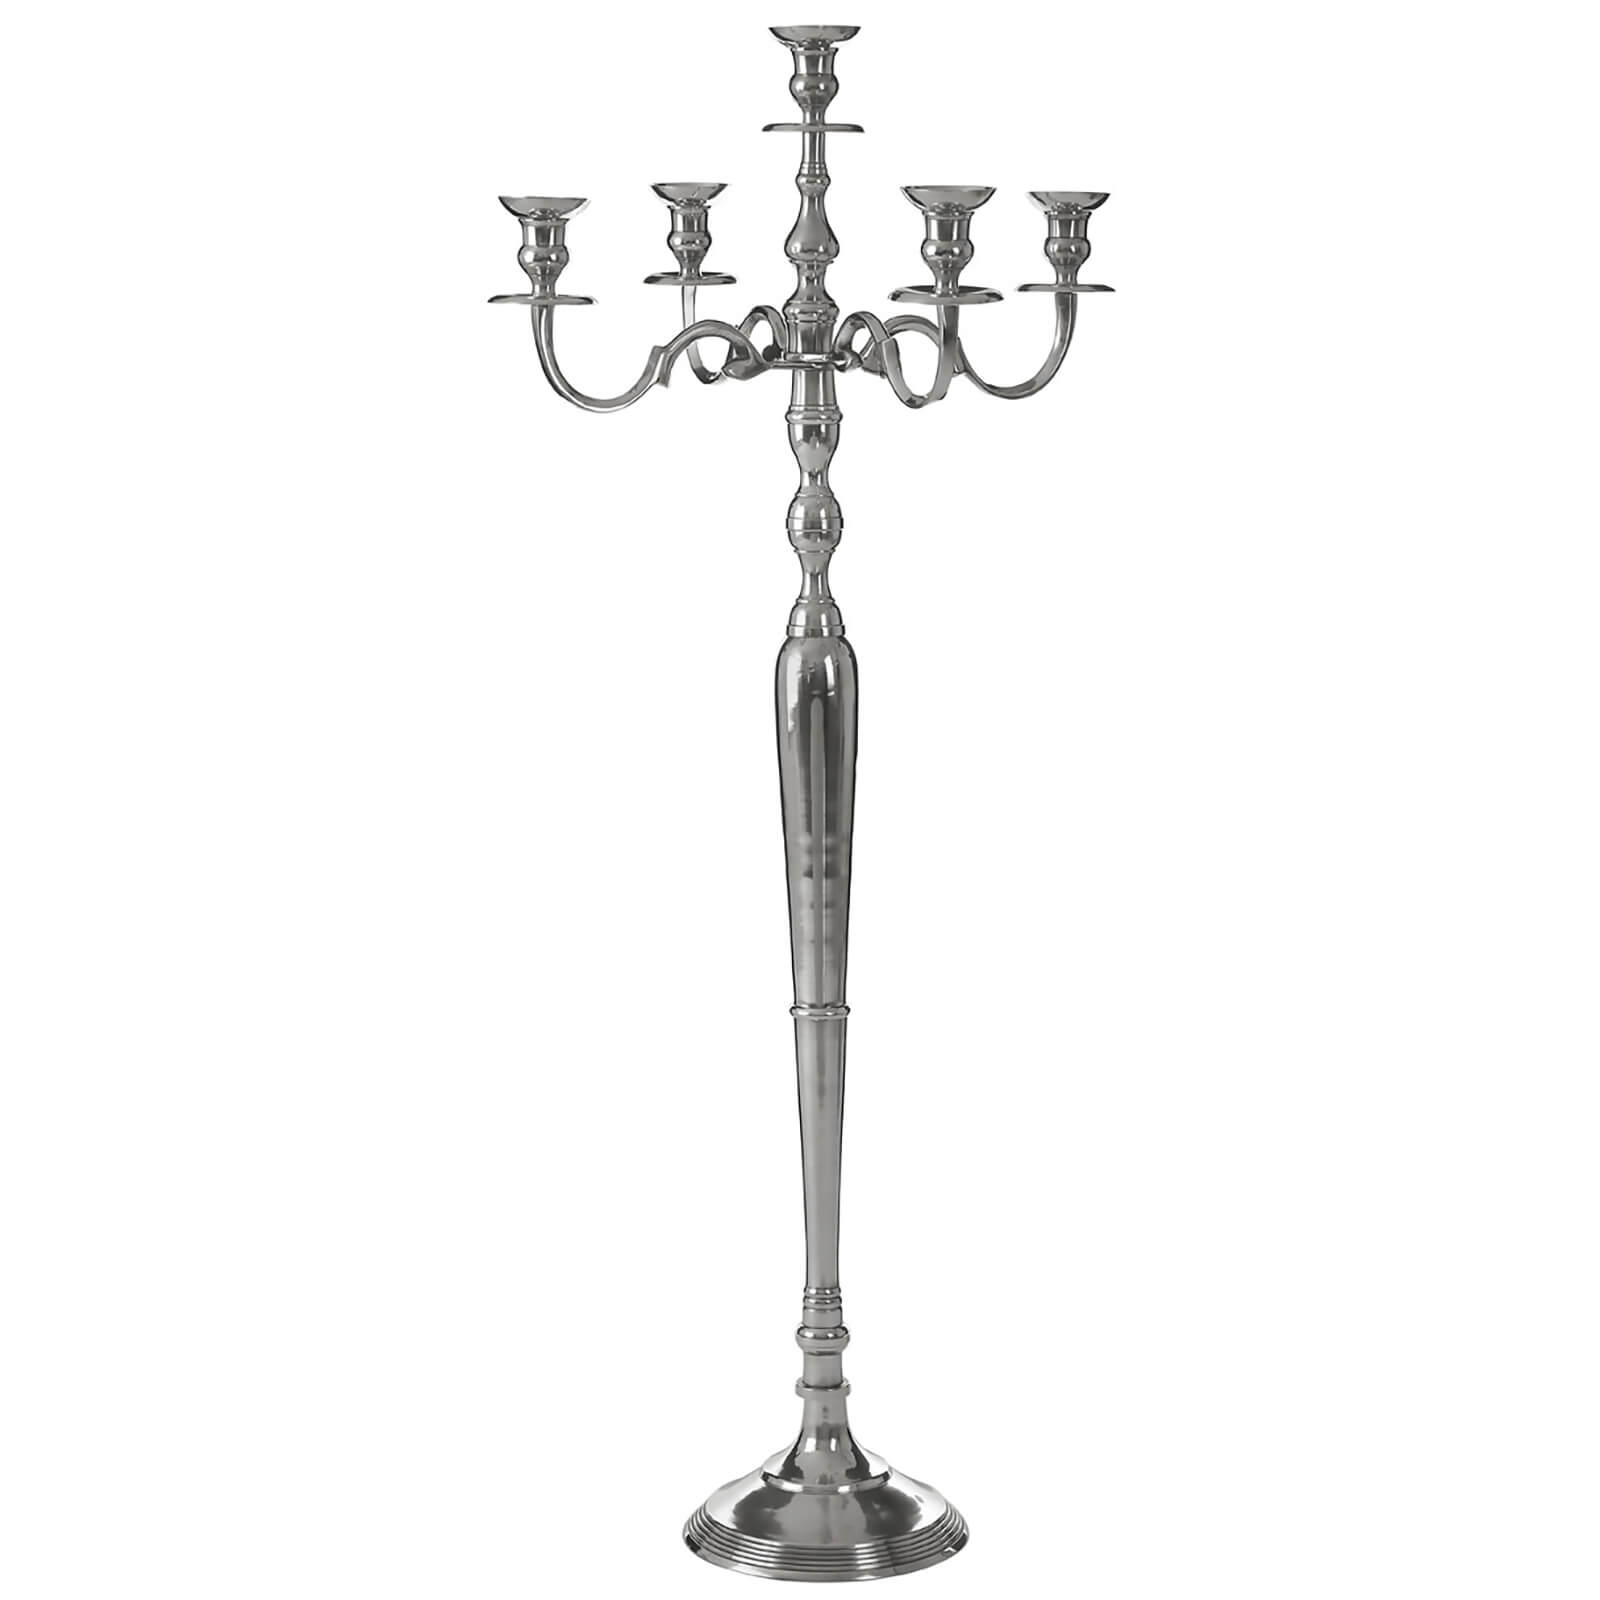 Fifty Five South 5 Arm Candelabra - Aluminium/Polished Finish